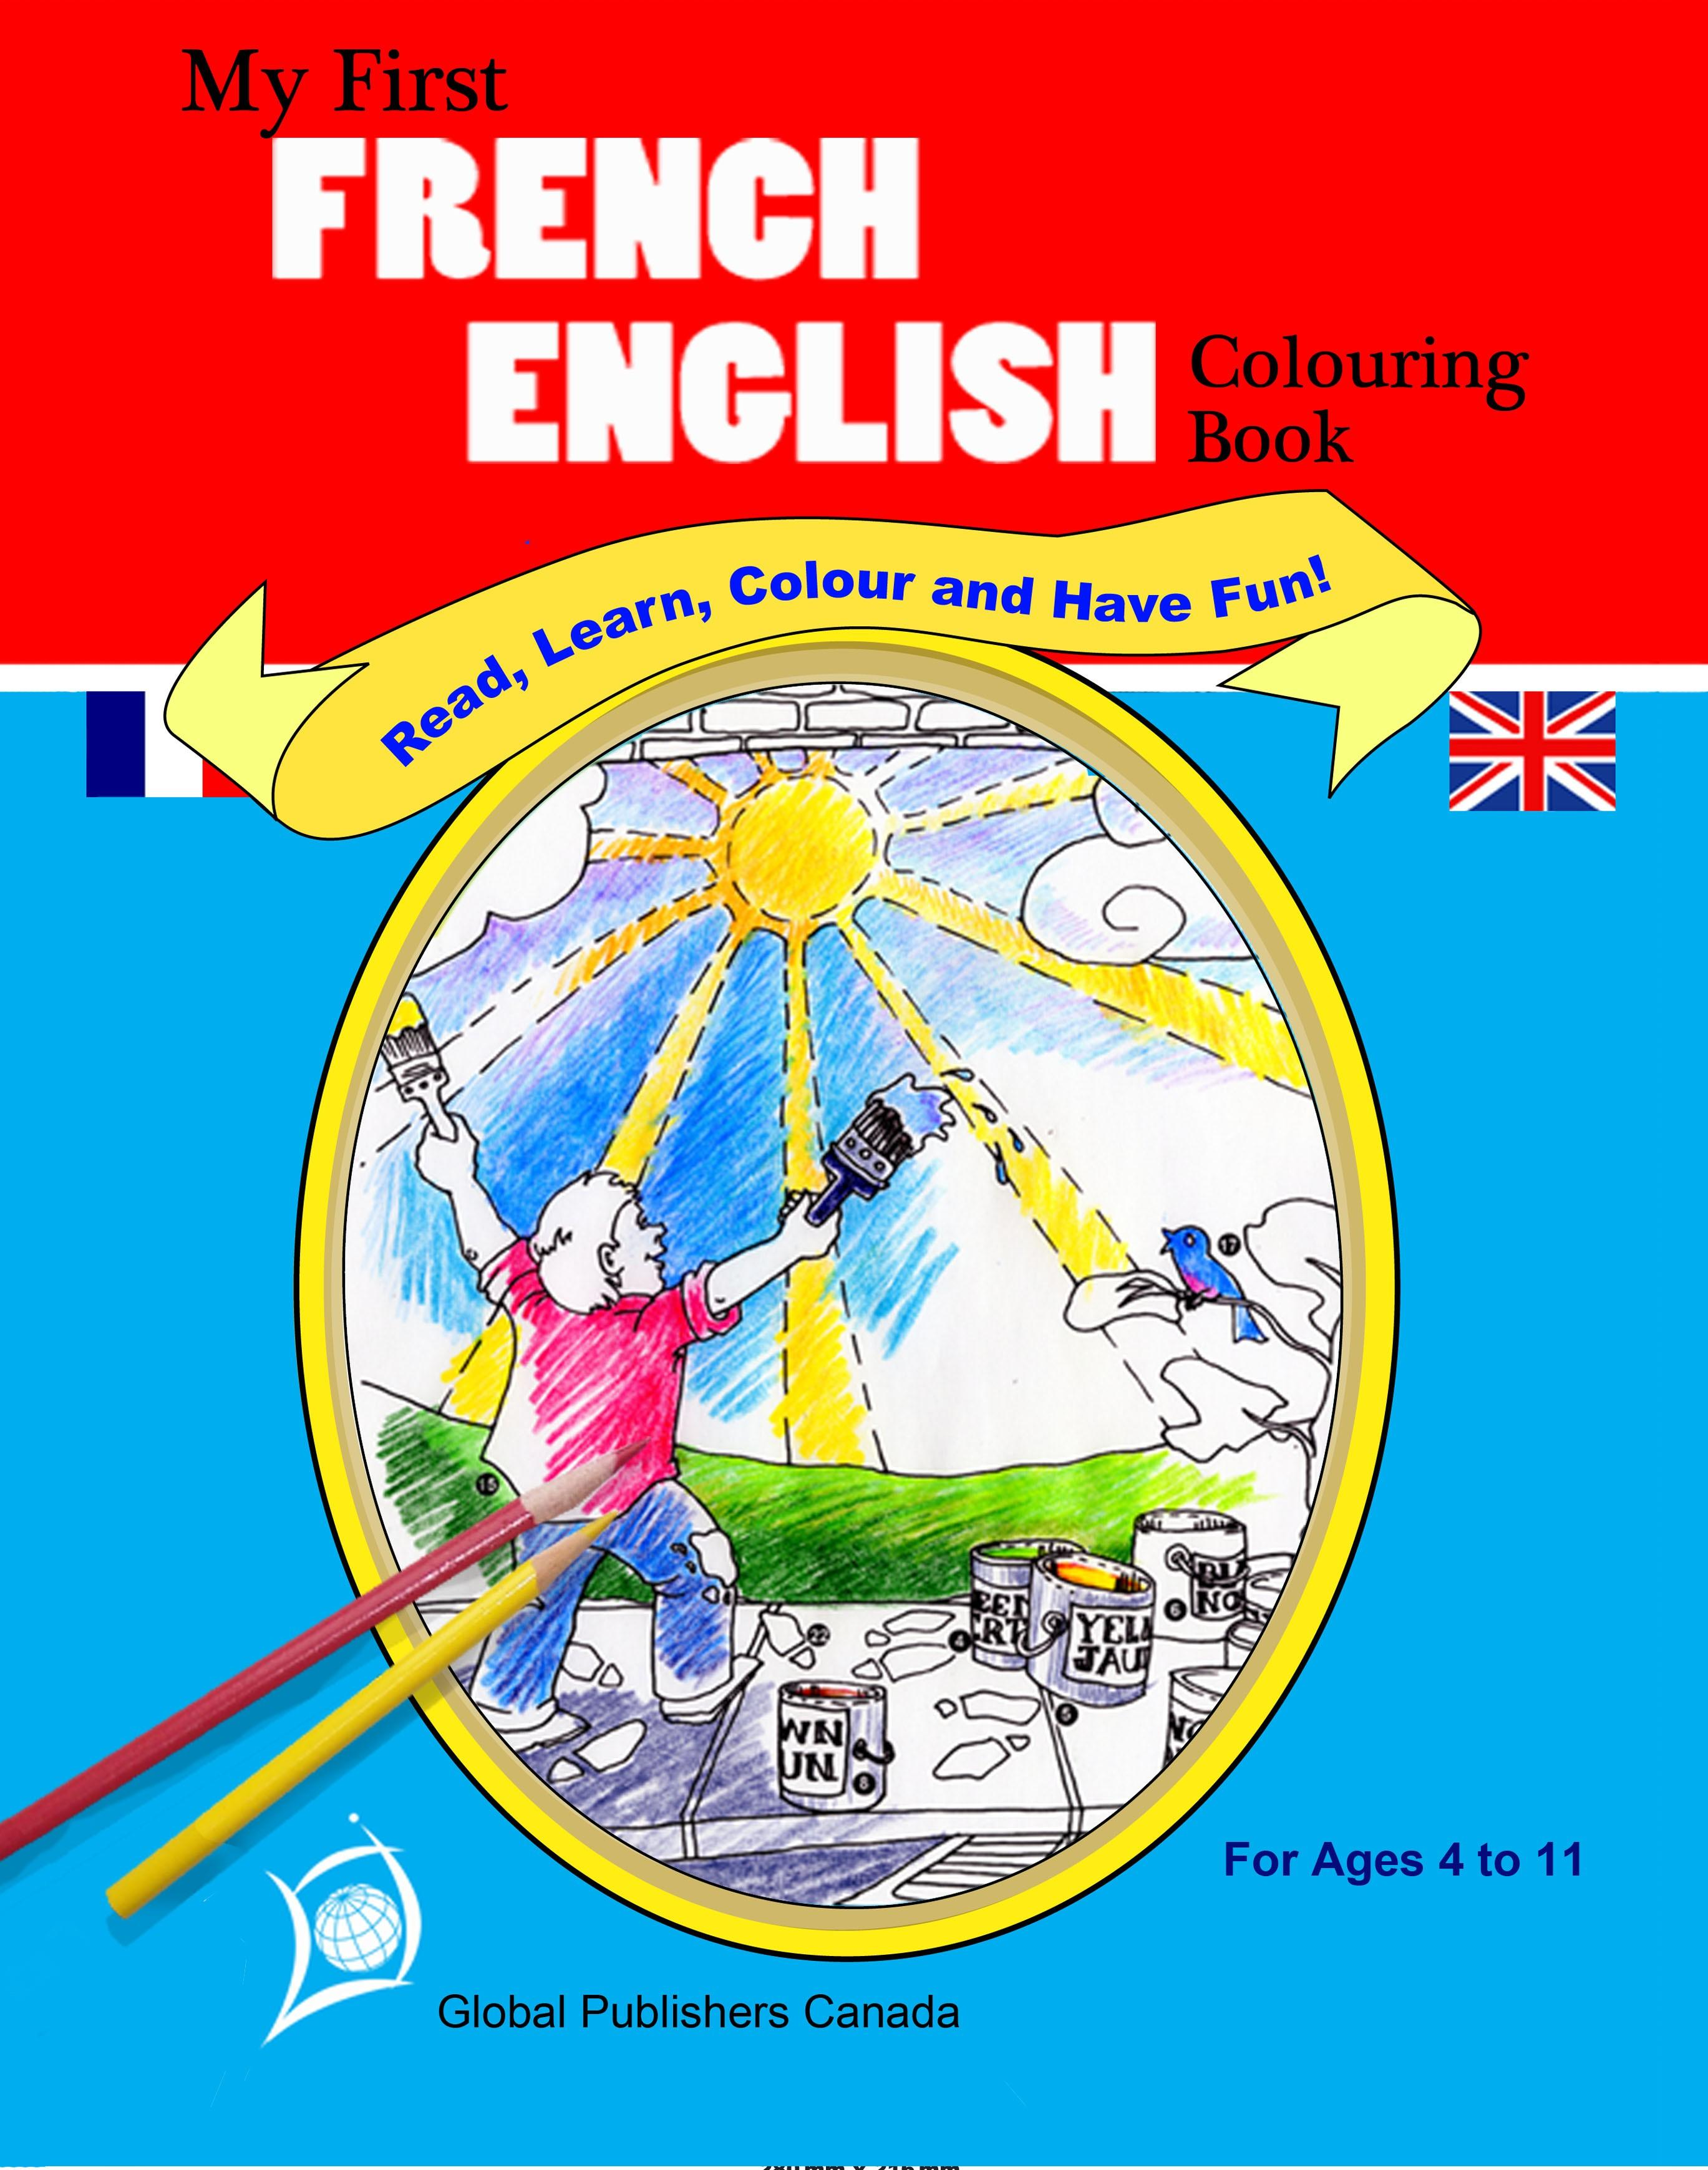 My first French-English coloring book EB2370004377193